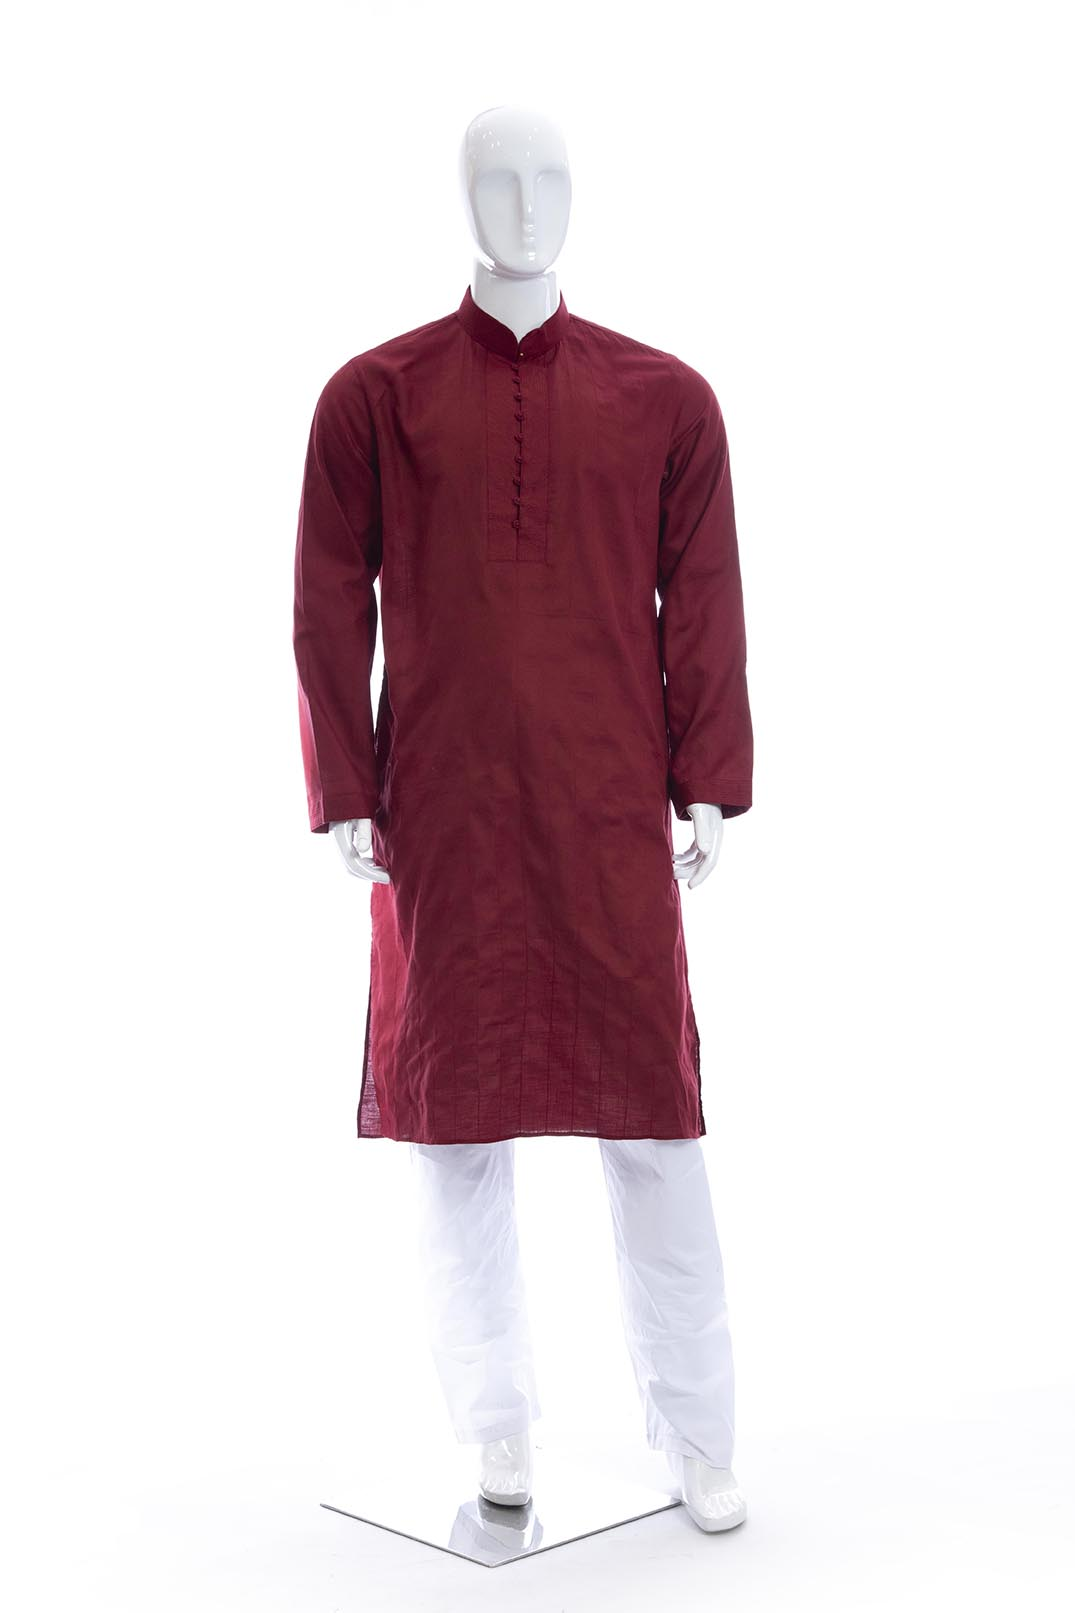 MENSWEAR-KURTA PYJAMA-COTTON